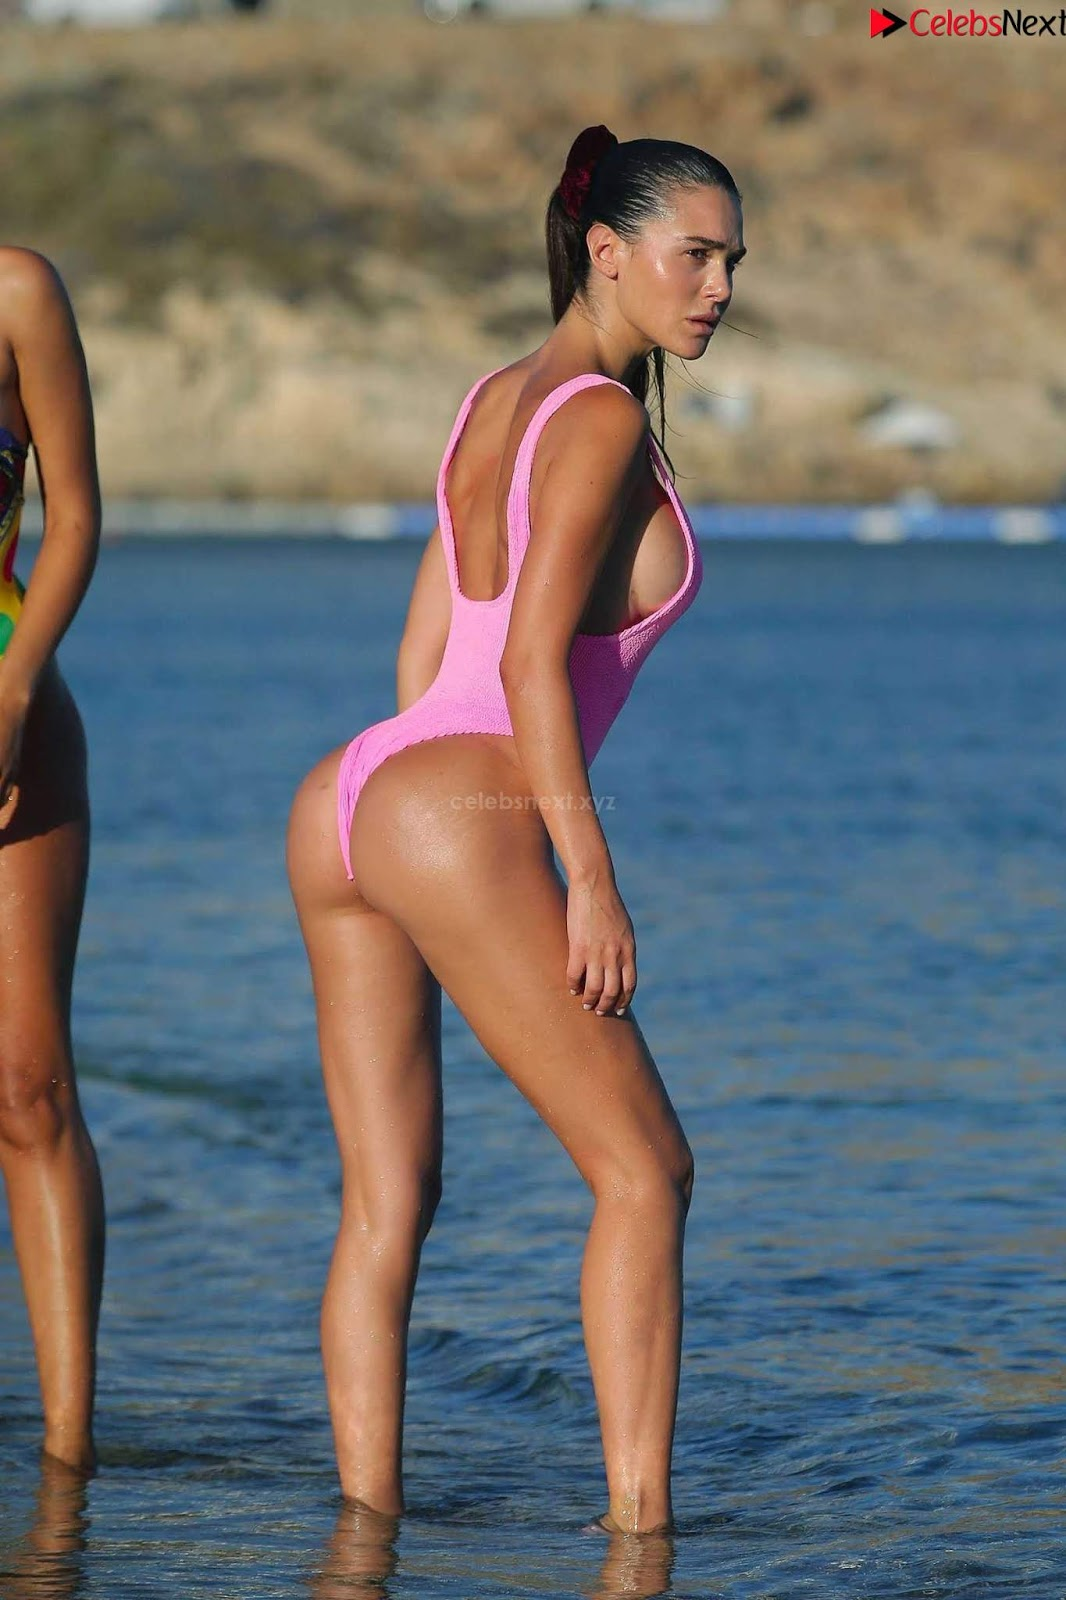 Silvia+Caruso+iN+Pink+Swimsuit+SEXY+ASS+%7E+CelebsNext.xyz+Exclusive+001.jpg